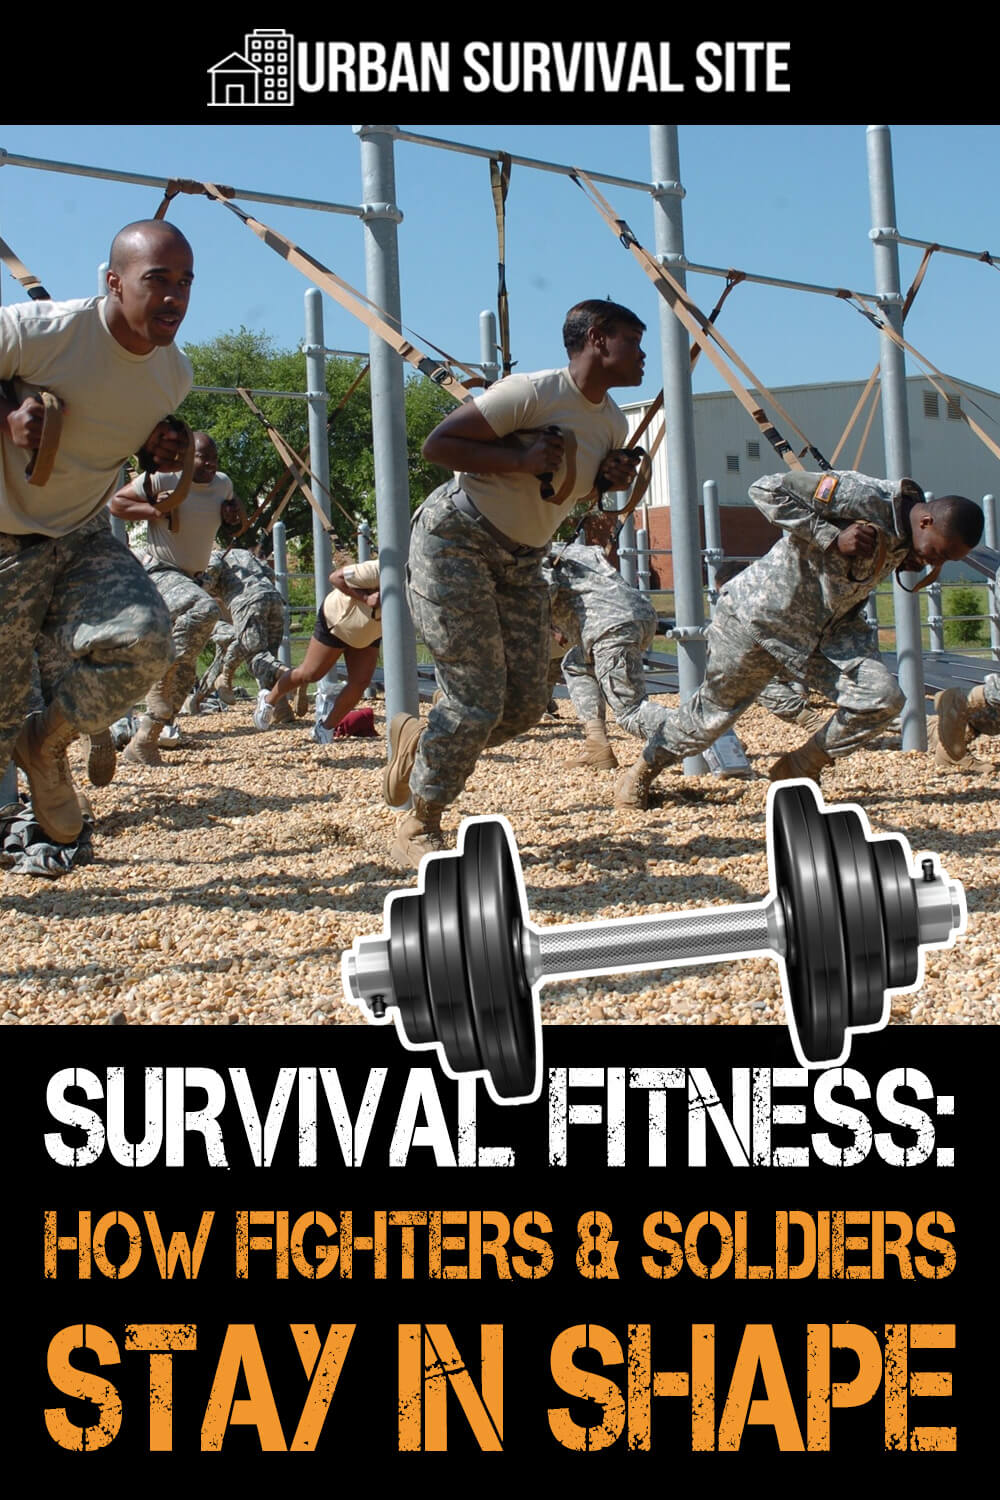 Survival Fitness: How Fighters & Soldiers Stay in Shape